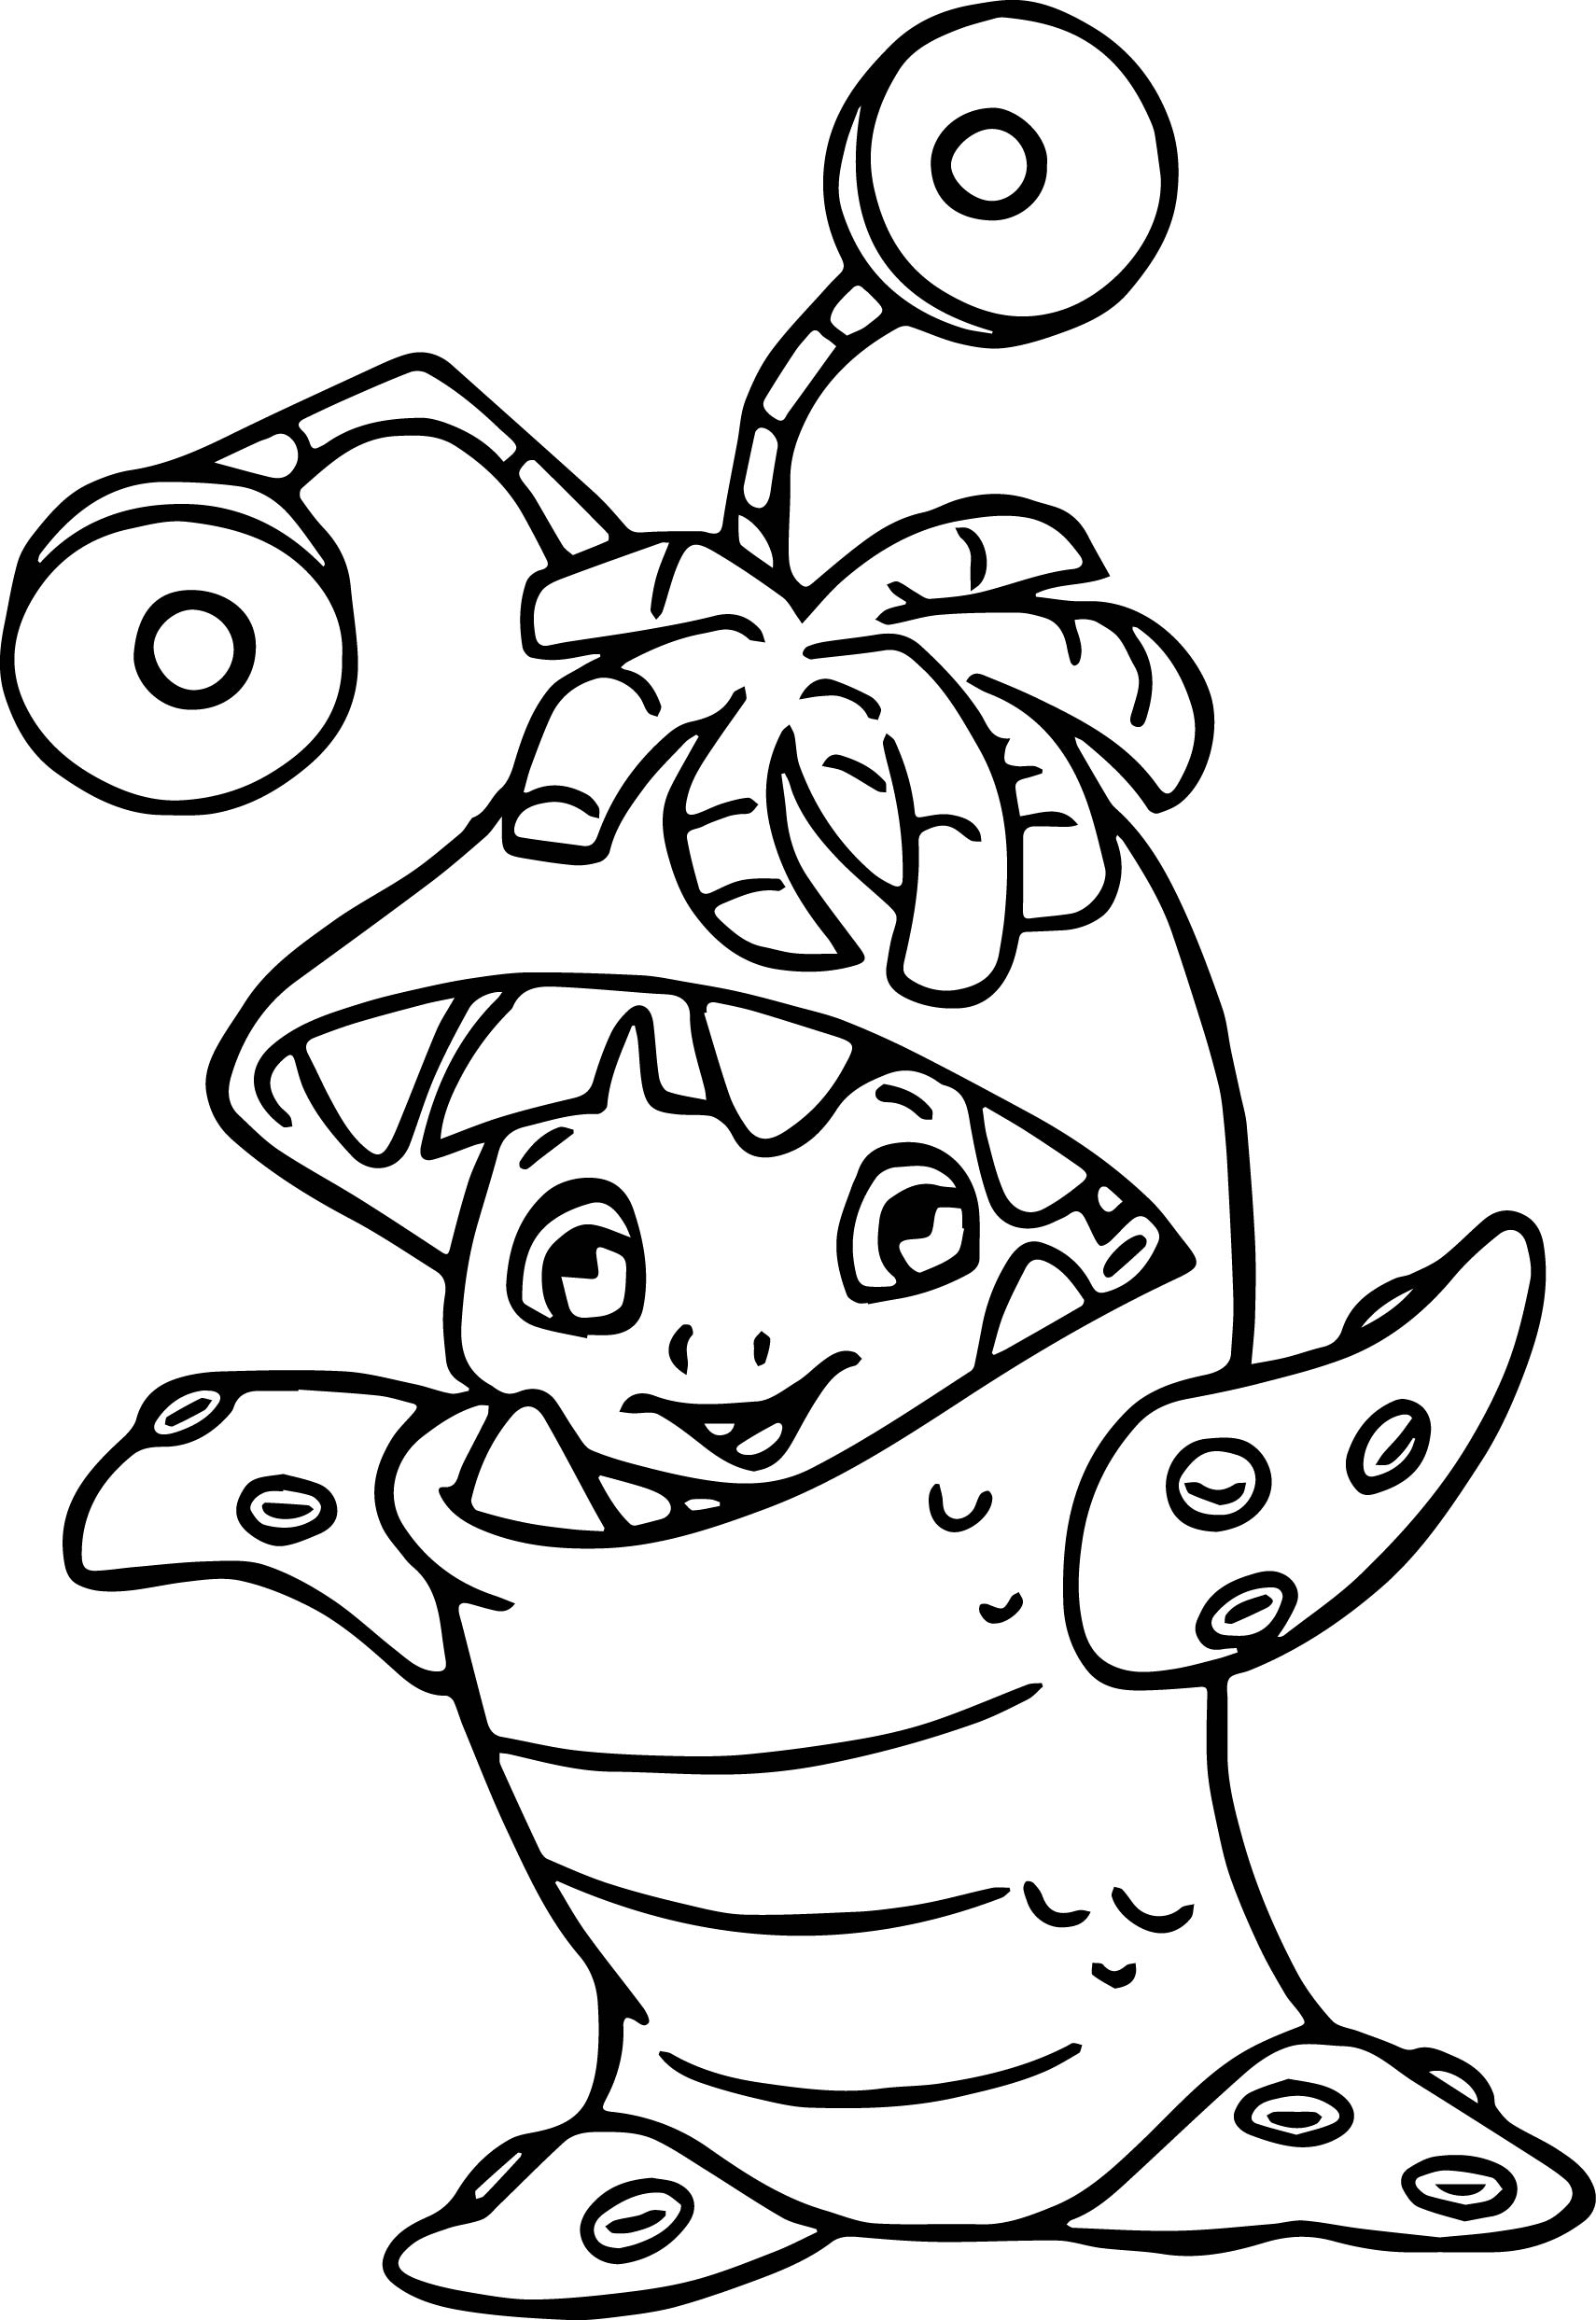 monsters inc doors coloring pages - photo#28